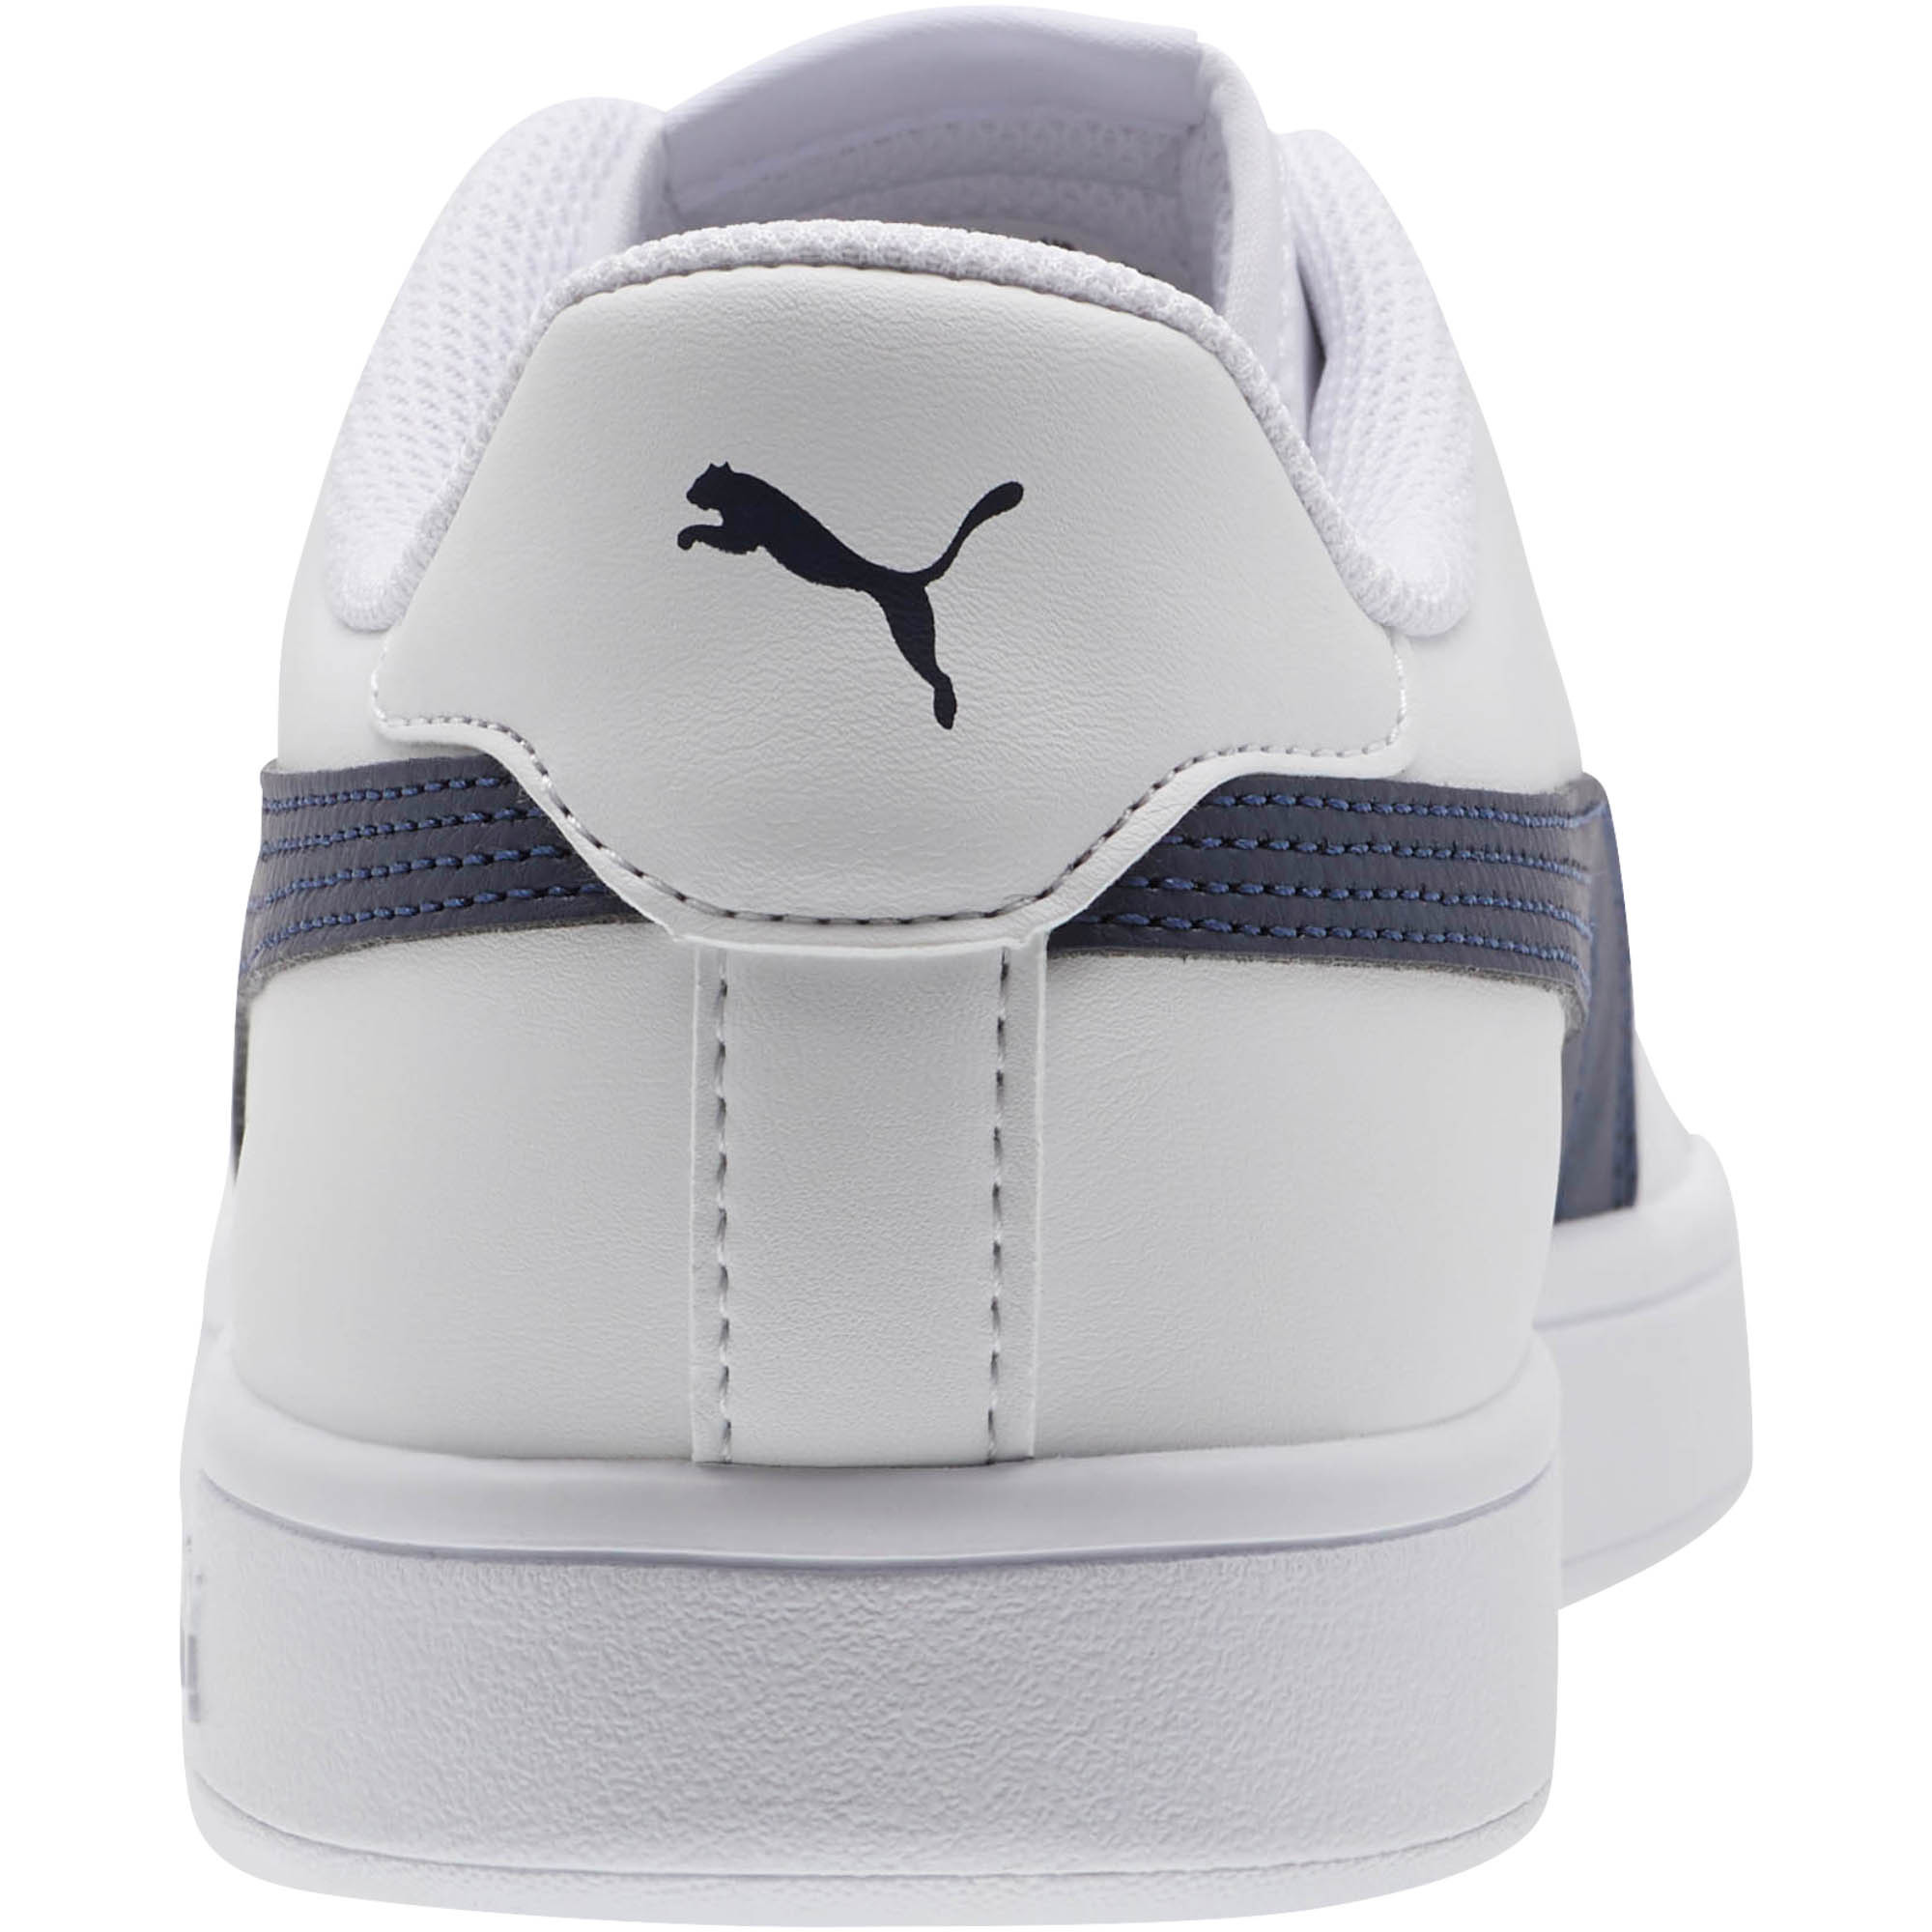 PUMA-PUMA-Smash-v2-Men-039-s-Sneakers-Men-Shoe-Basics thumbnail 13